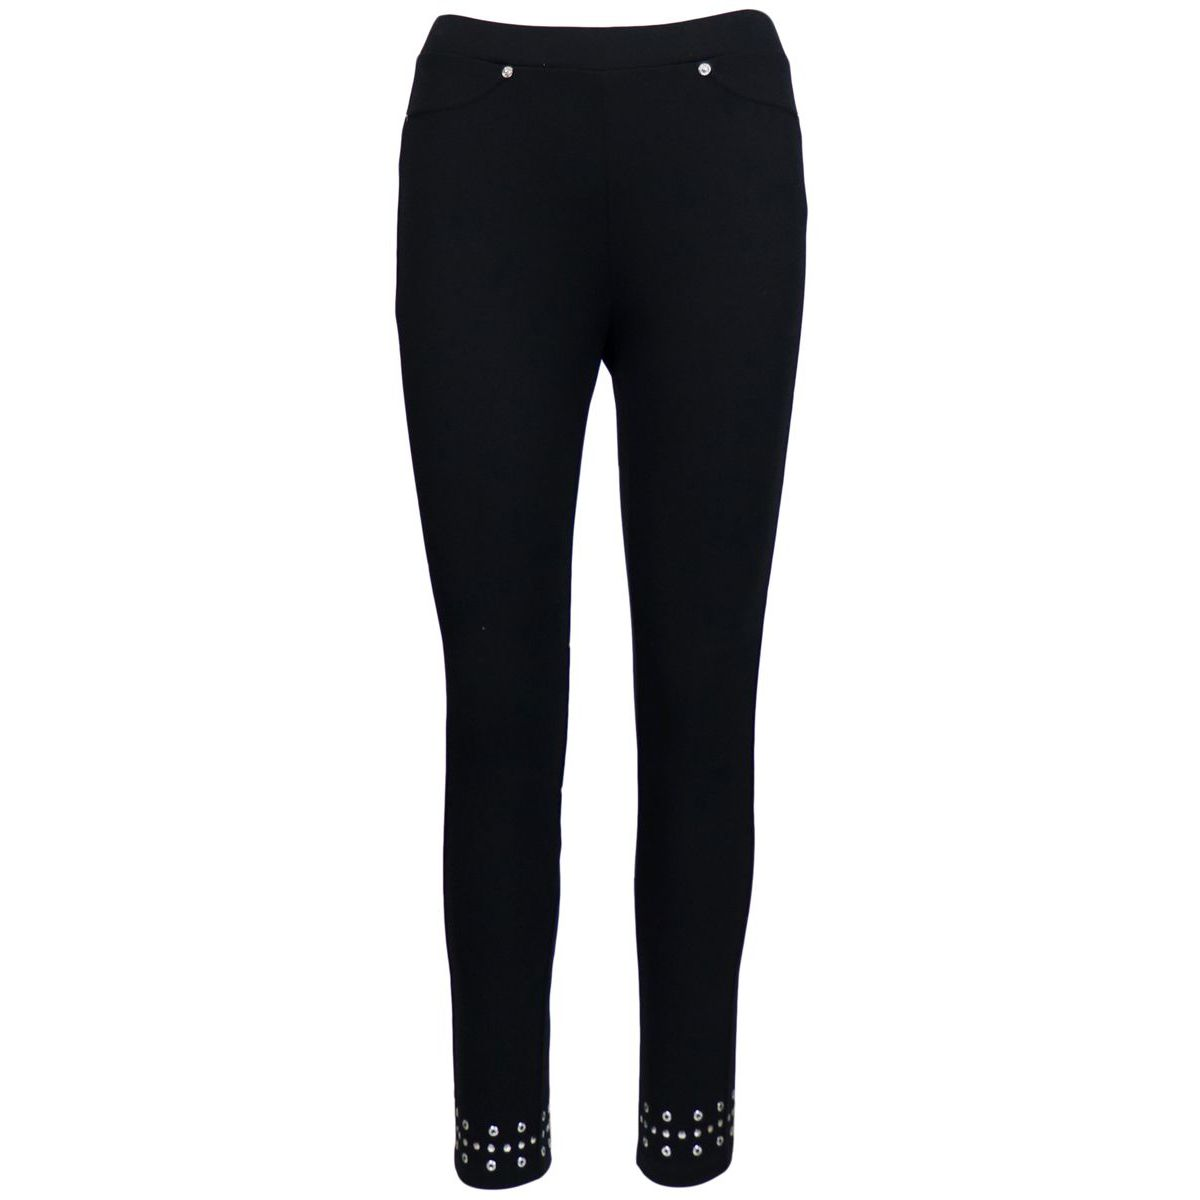 Skinny fit leggings pants with appliqués on the bottom Black / silver Michael Kors